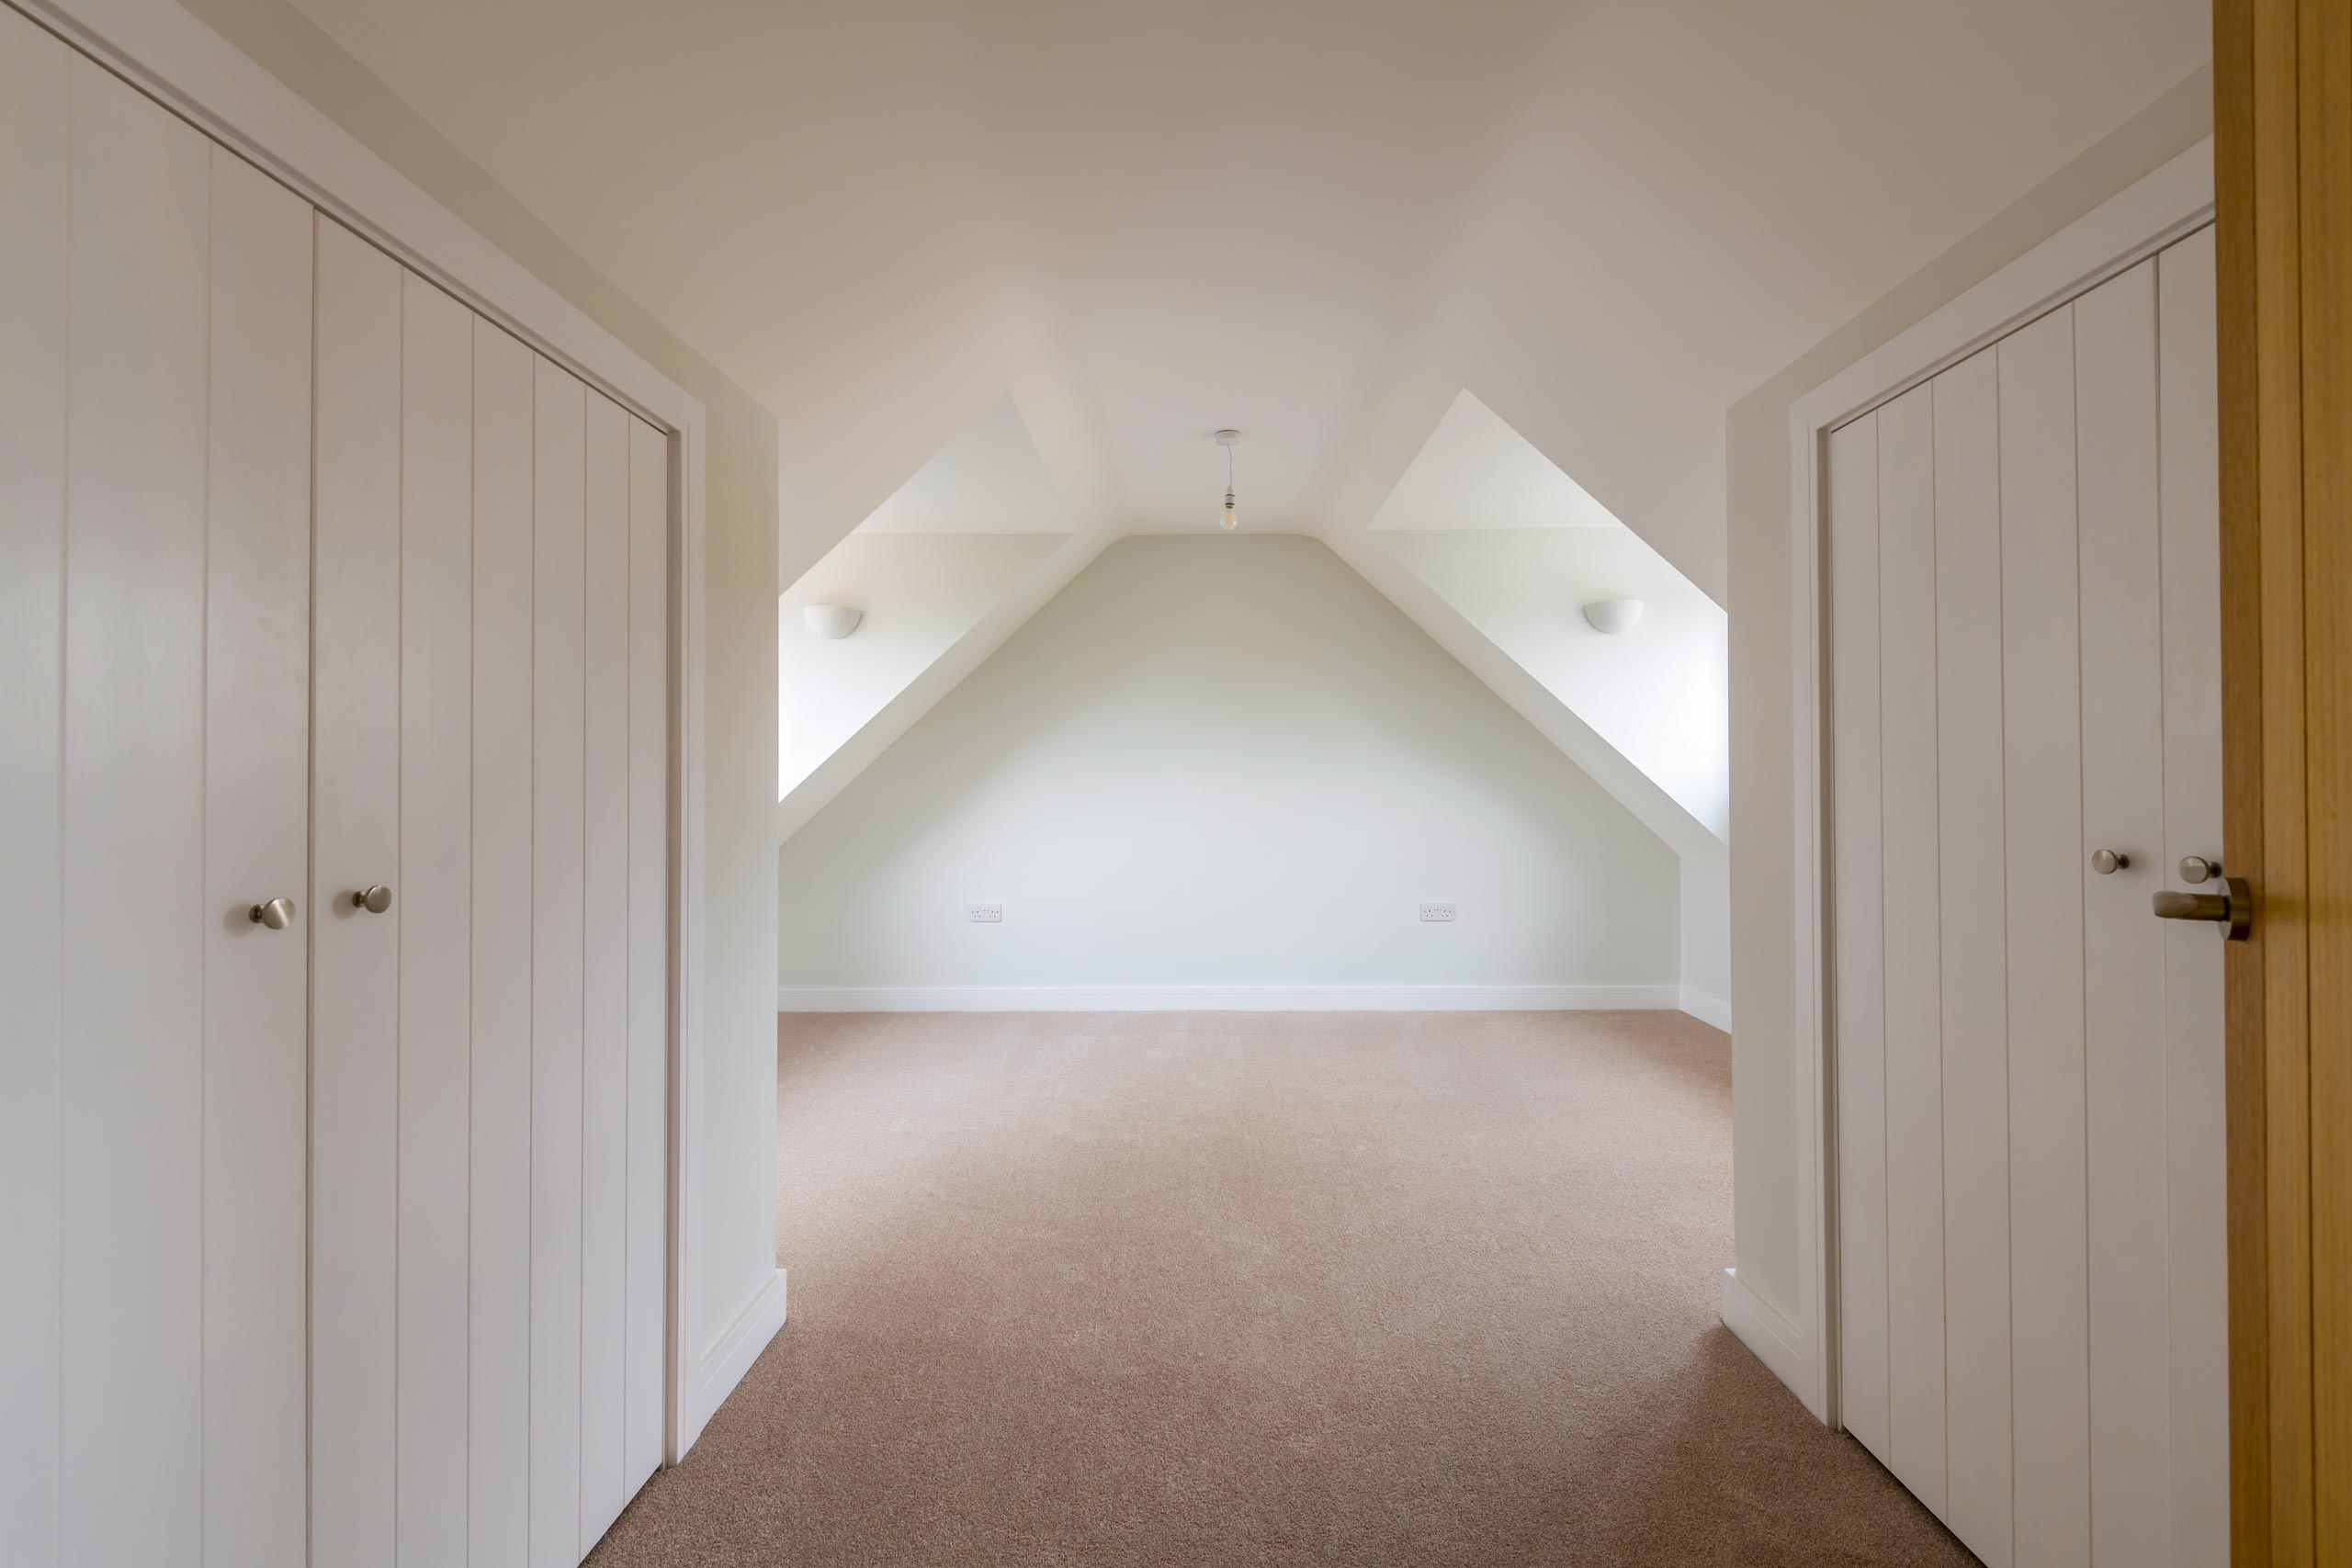 A newly finished loft conversion in Oxford